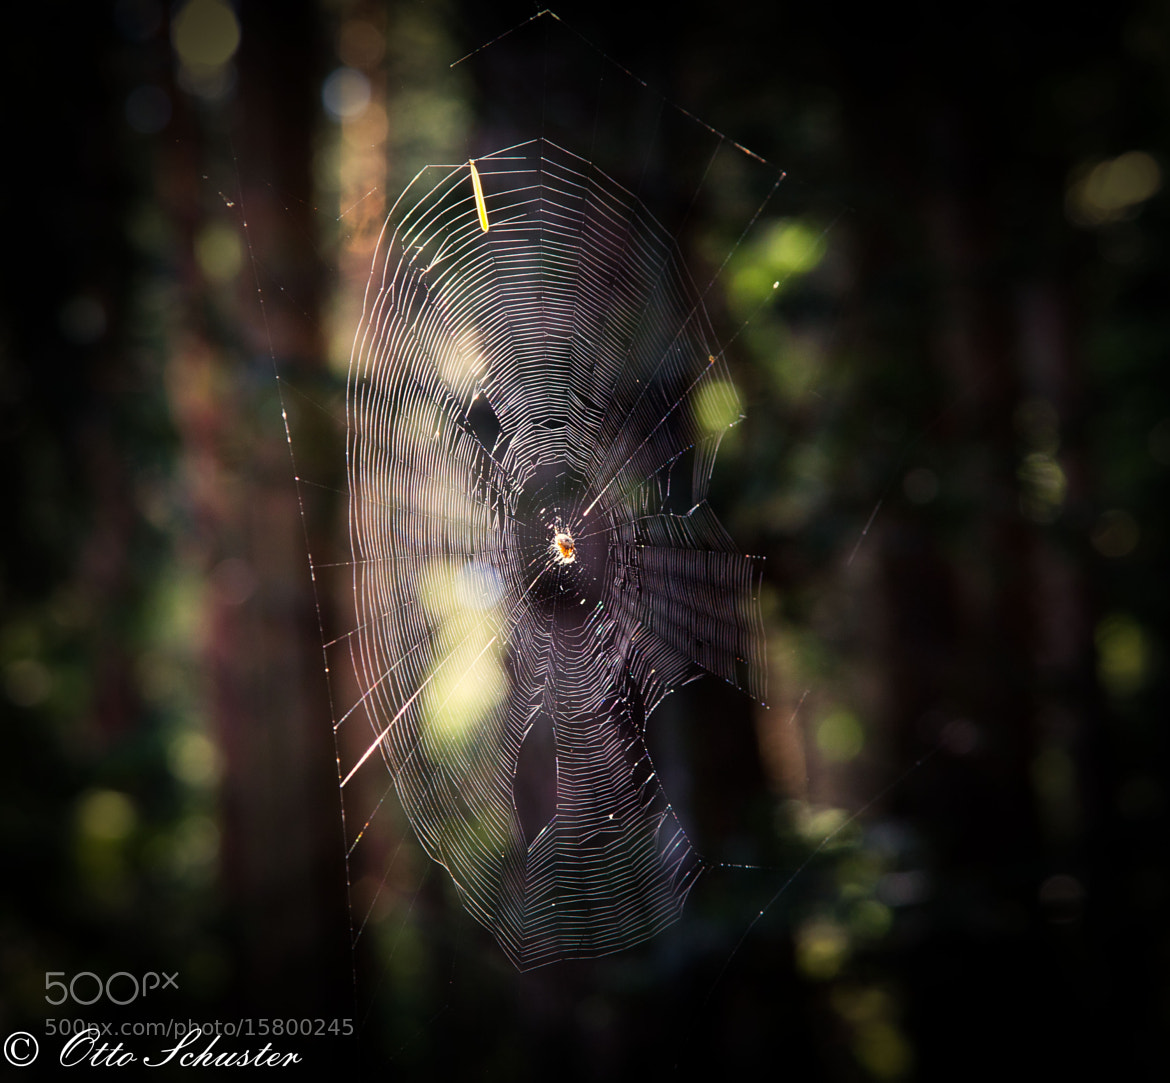 Photograph Spiderwebb by Otto Schuster on 500px